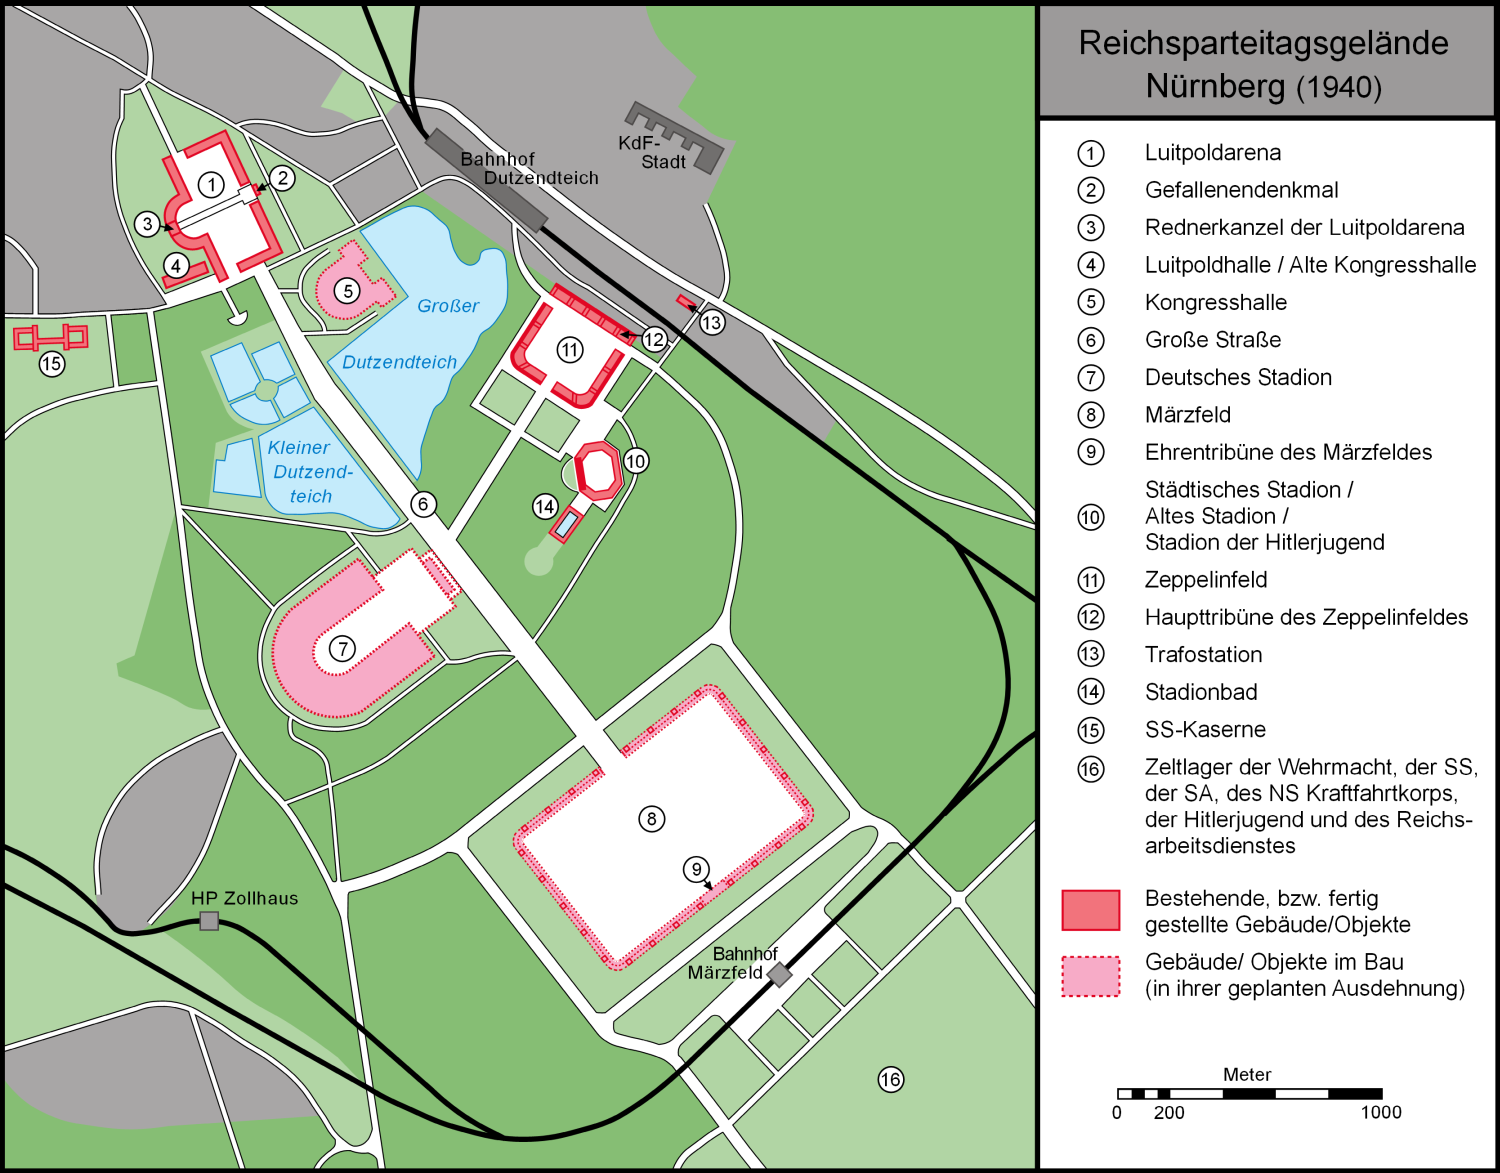 map of grounds (image credit: Lencer)